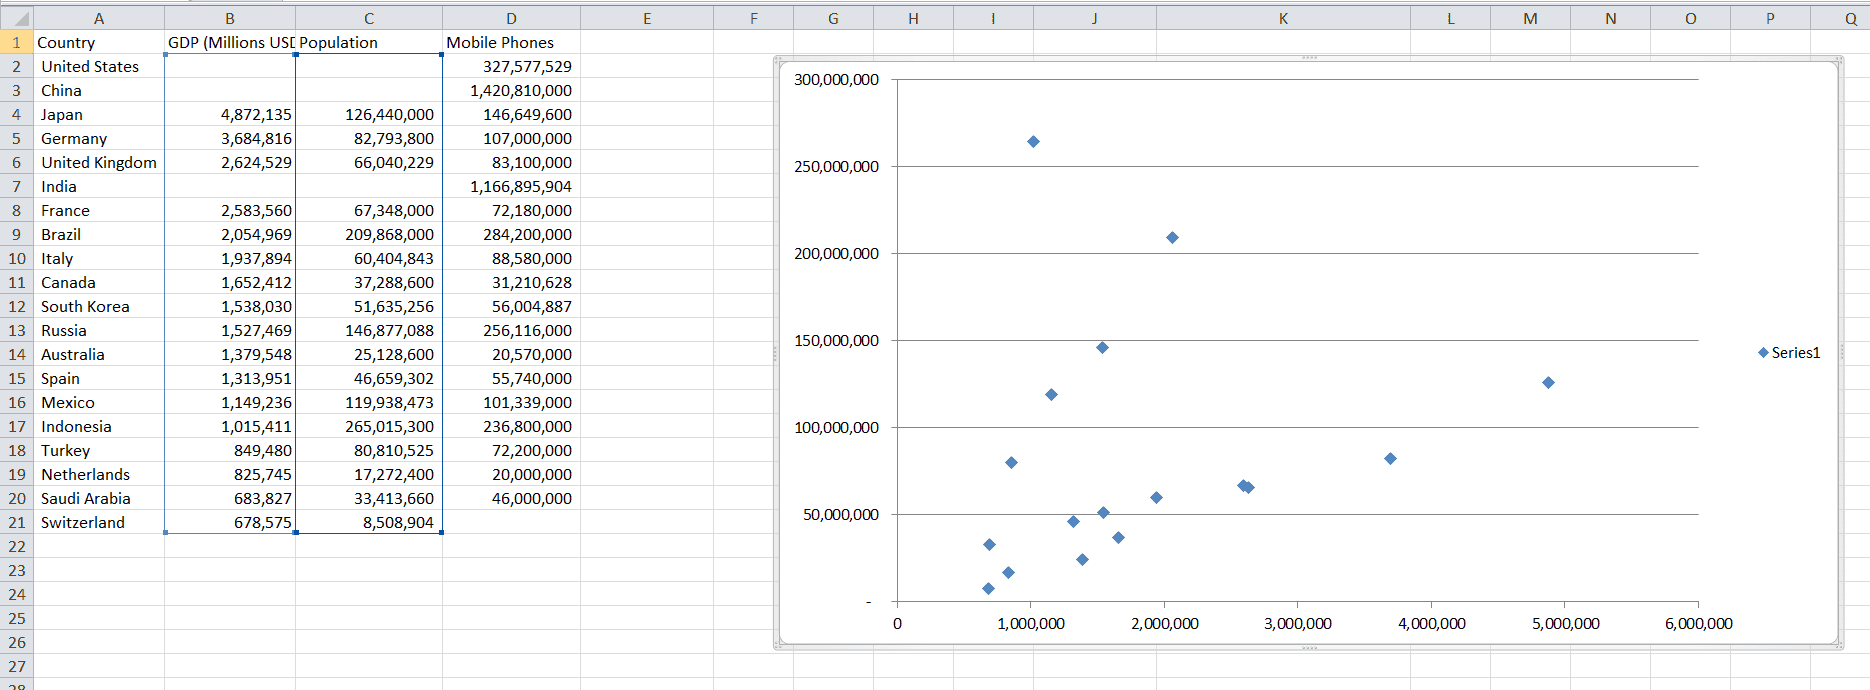 Data and Chart without outliers